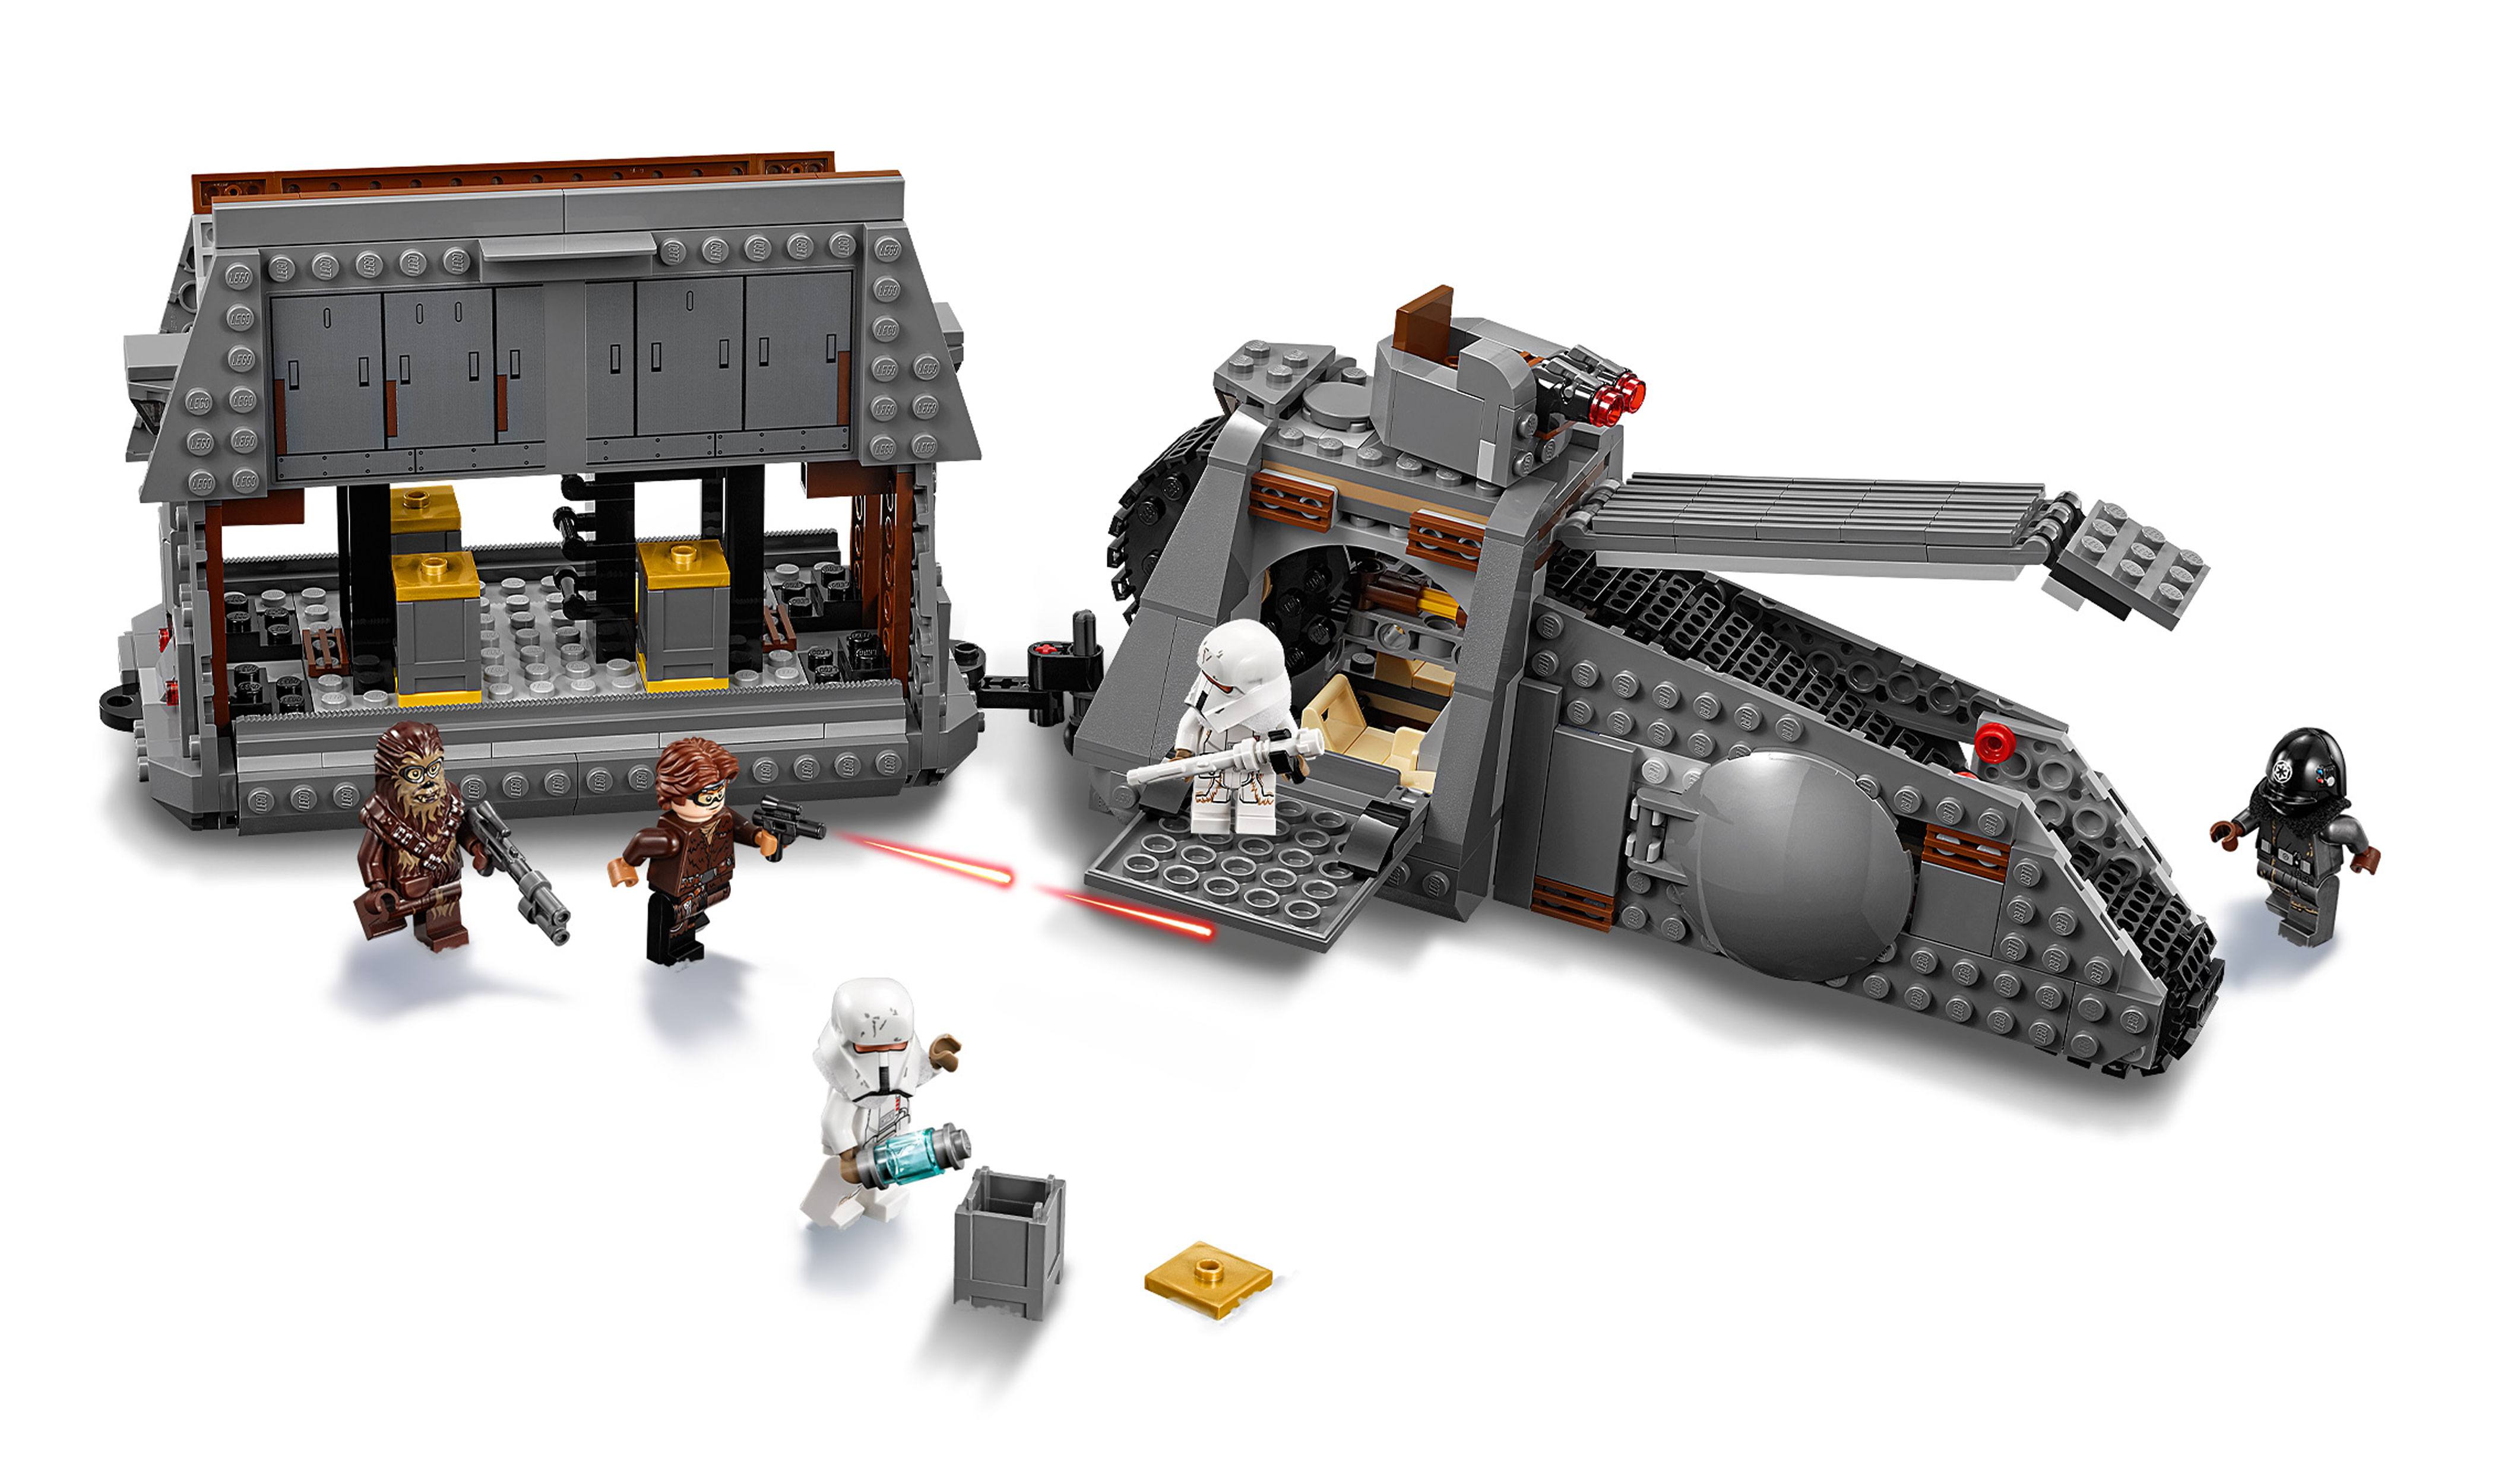 Star Wars™ Darth Vader™ Pod () offer is valid on lockrepnorthrigh.cf and at LEGO Stores from December 1 through pm EST, December 31, or while supplies last only. Qualifying purchase must be of Darth Vader's Castle () only. Offer excludes Bricks & Pieces and backorder items. Cannot be applied to previous purchases or combined with any other discount, offer or free gift.